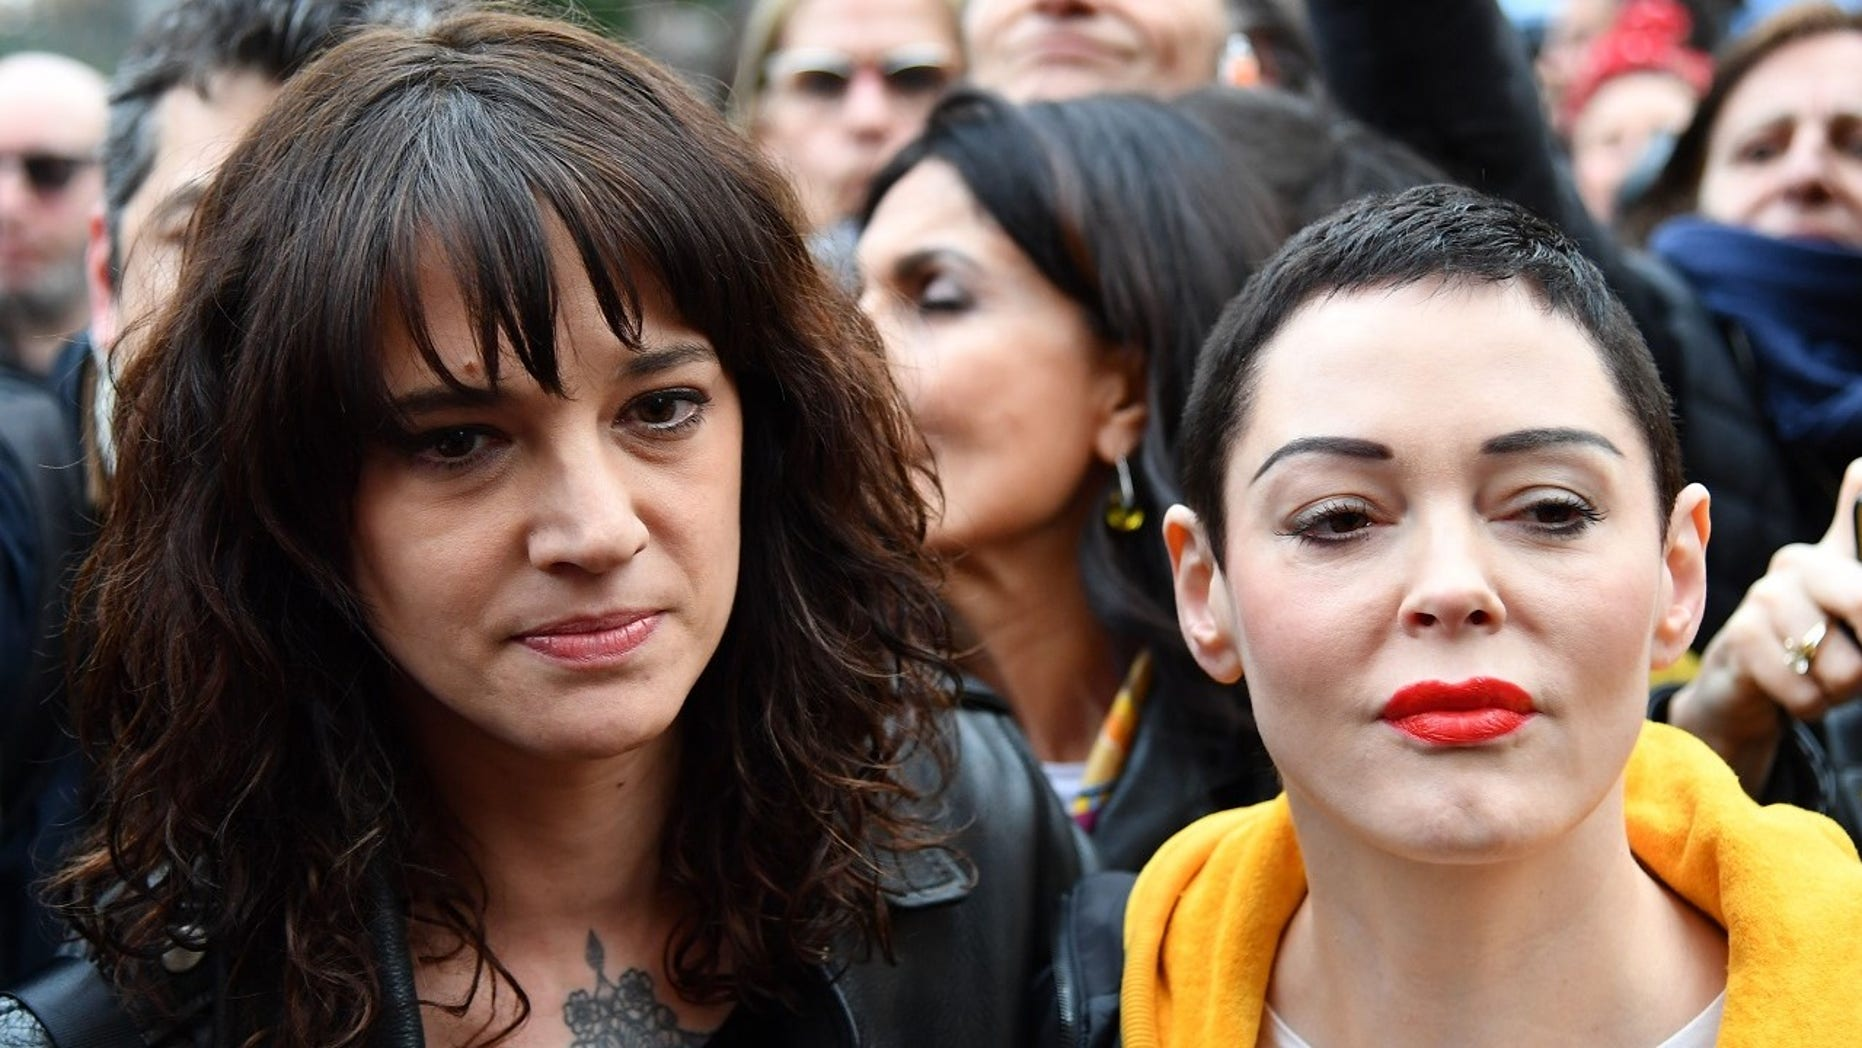 Asia Argento recalls sexual encounter with Jimmy Bennett